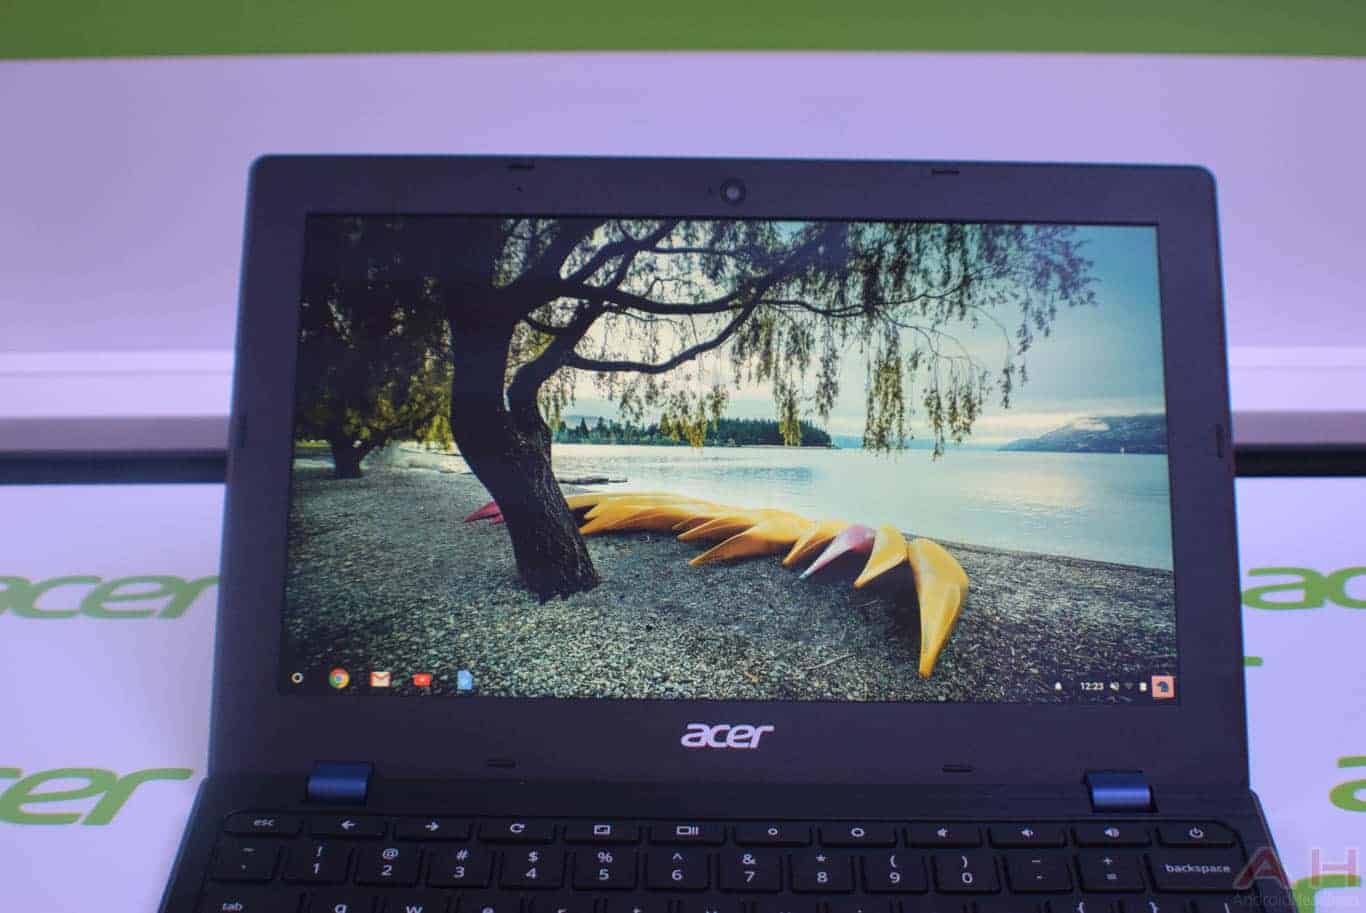 Acer Chromebook 11 CES 2018 AM AH 0010